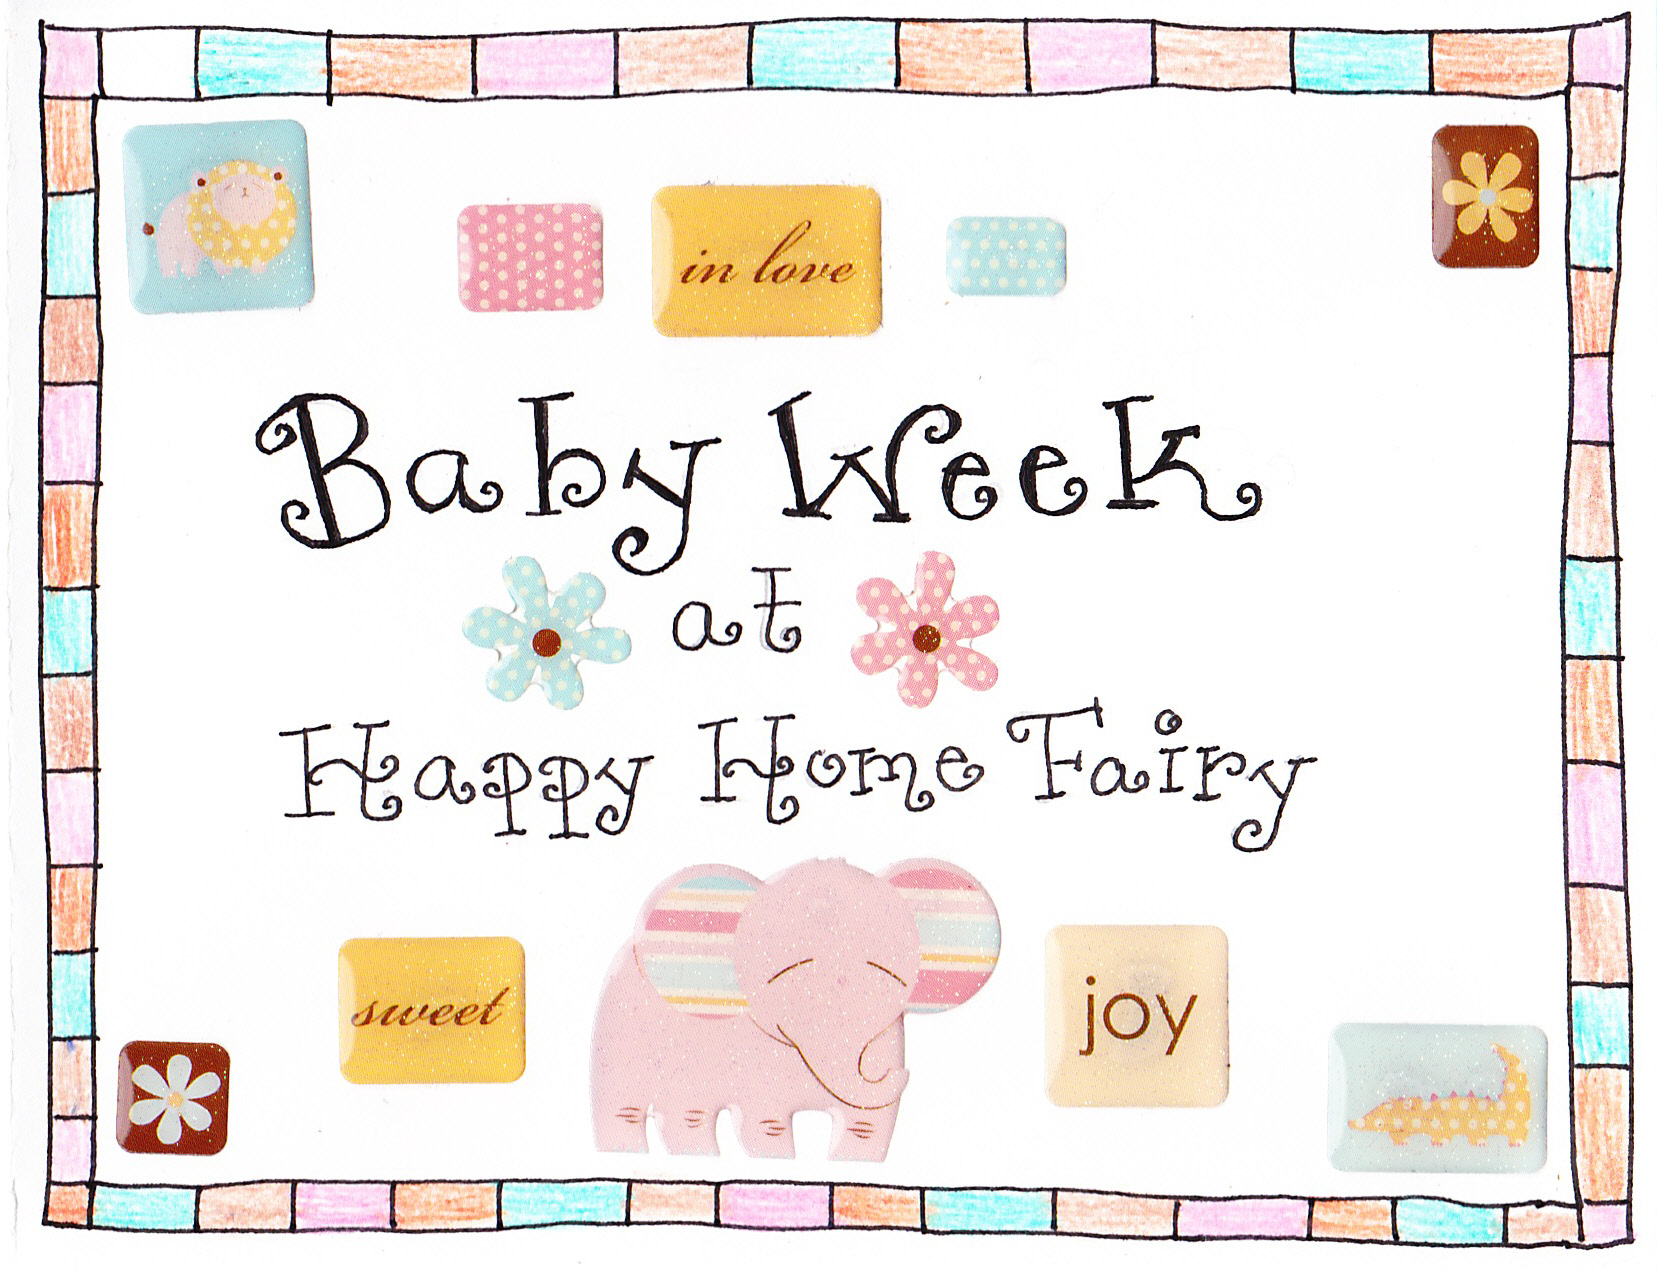 The 10 BEST Baby Shower Gift Ideas Happy Home Fairy